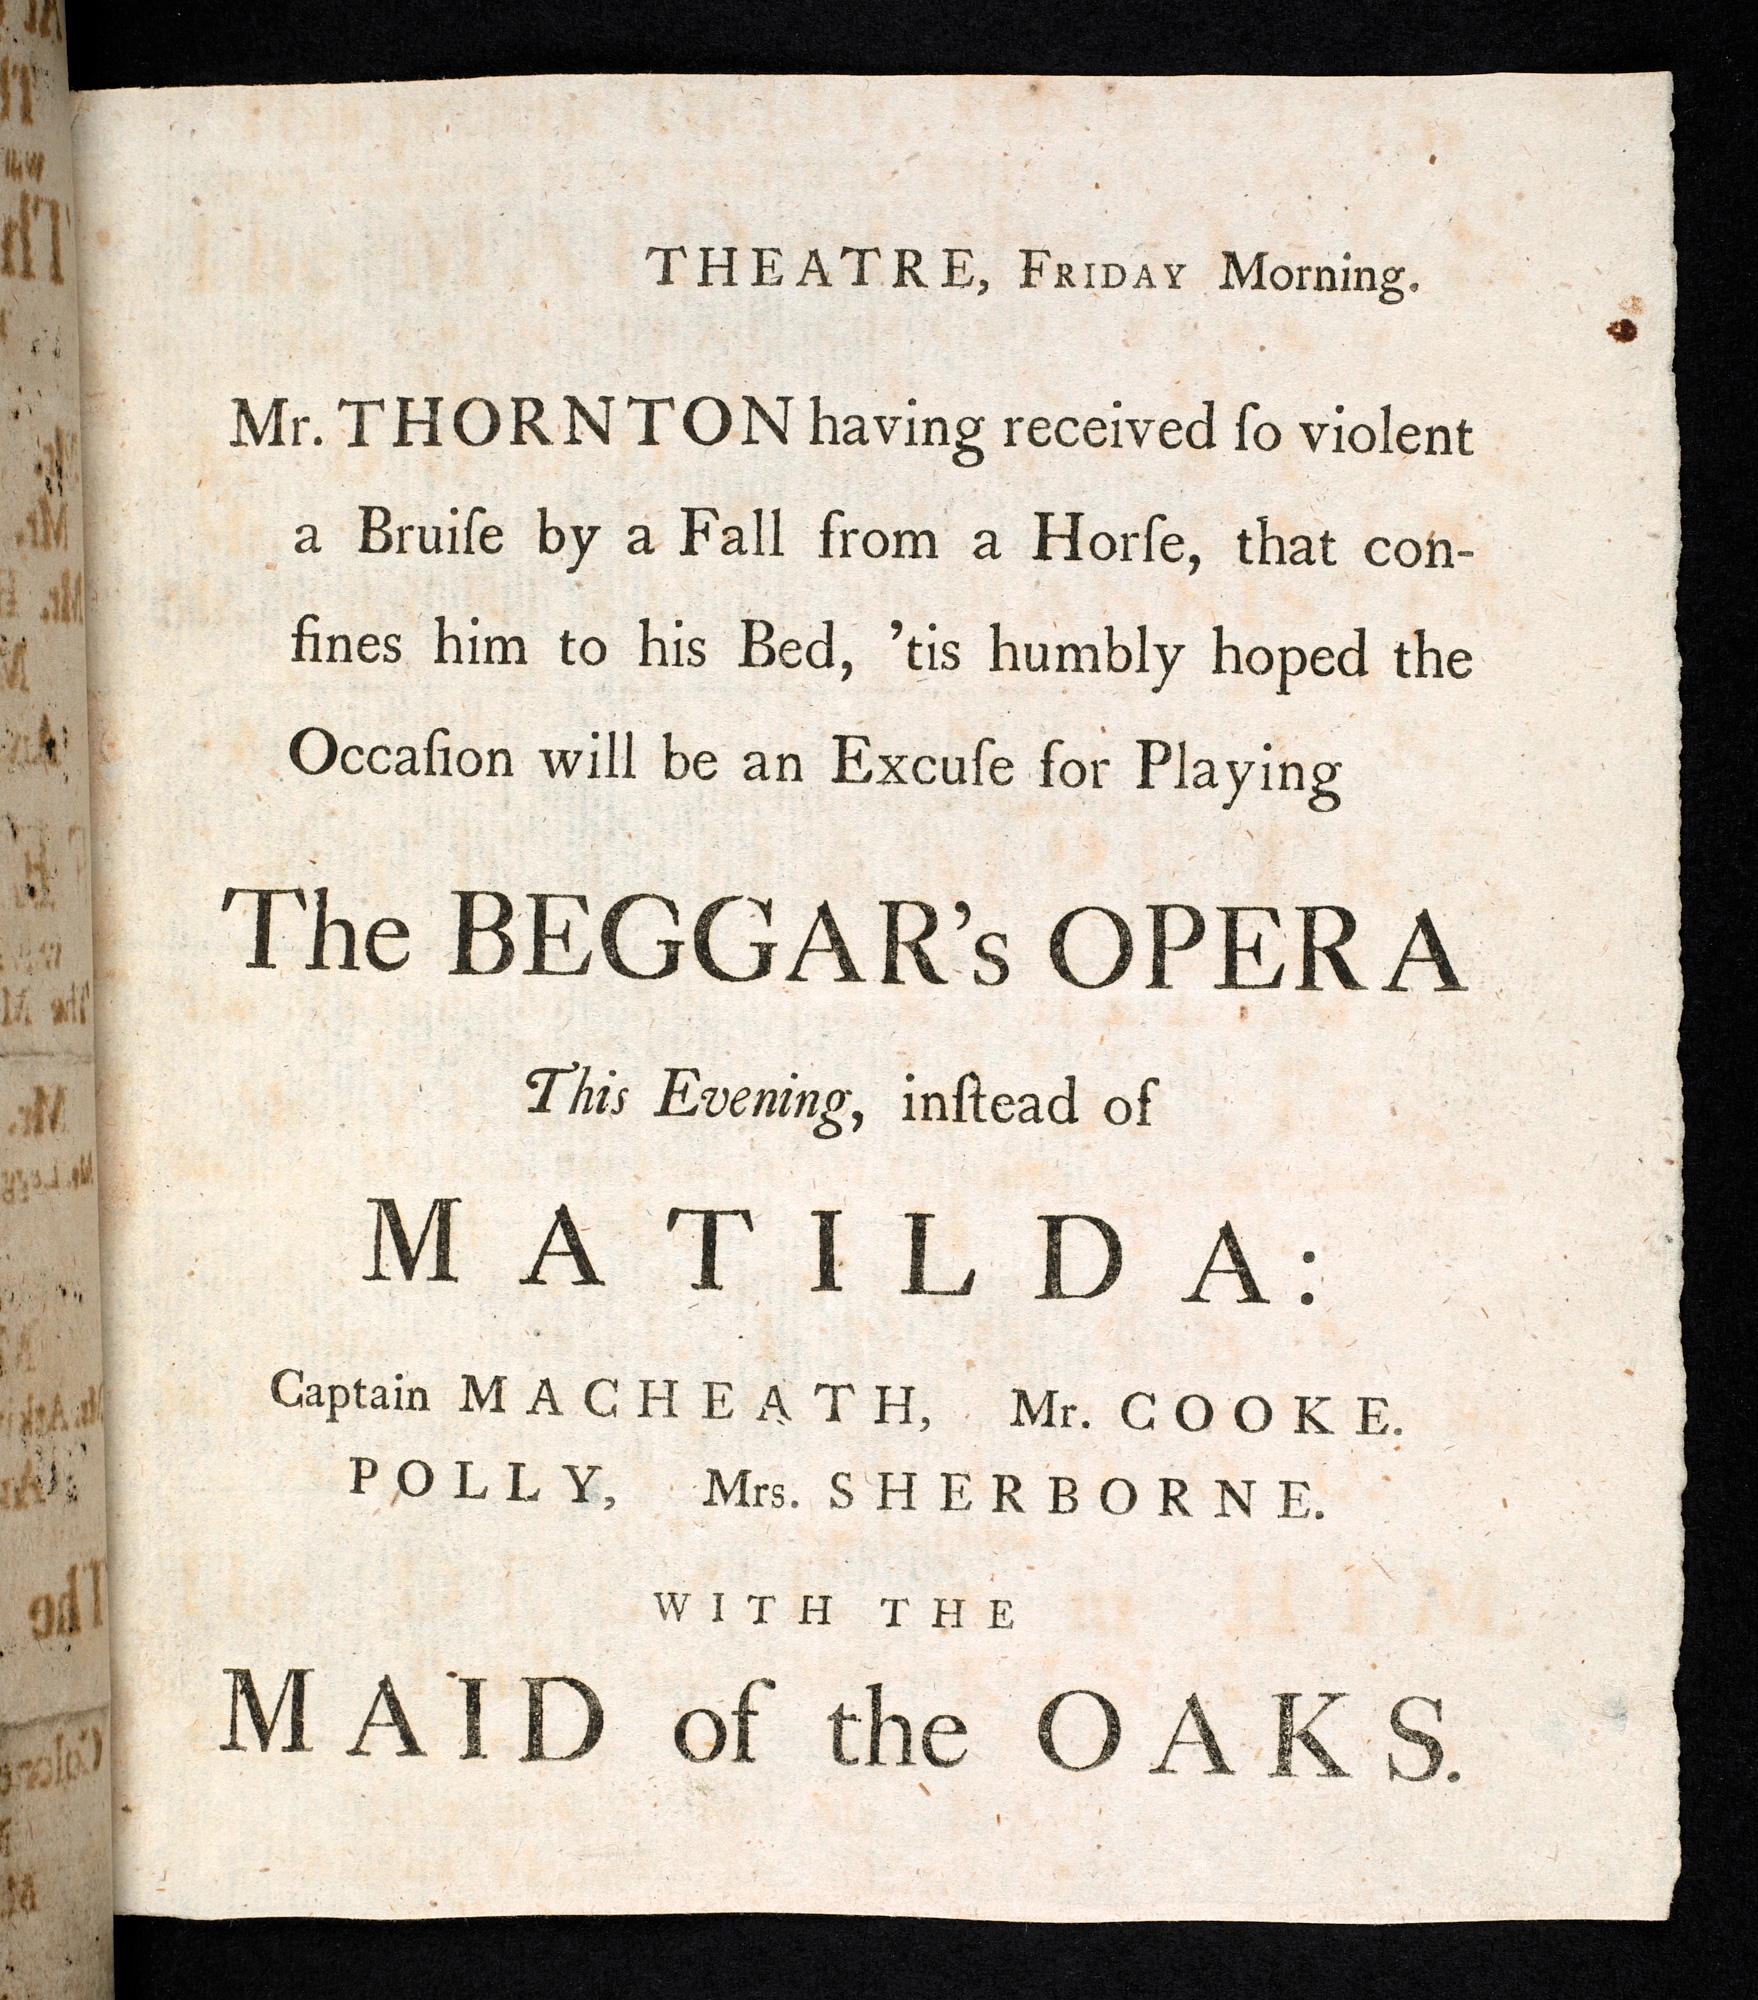 An introduction to 18th-century British theatre - The